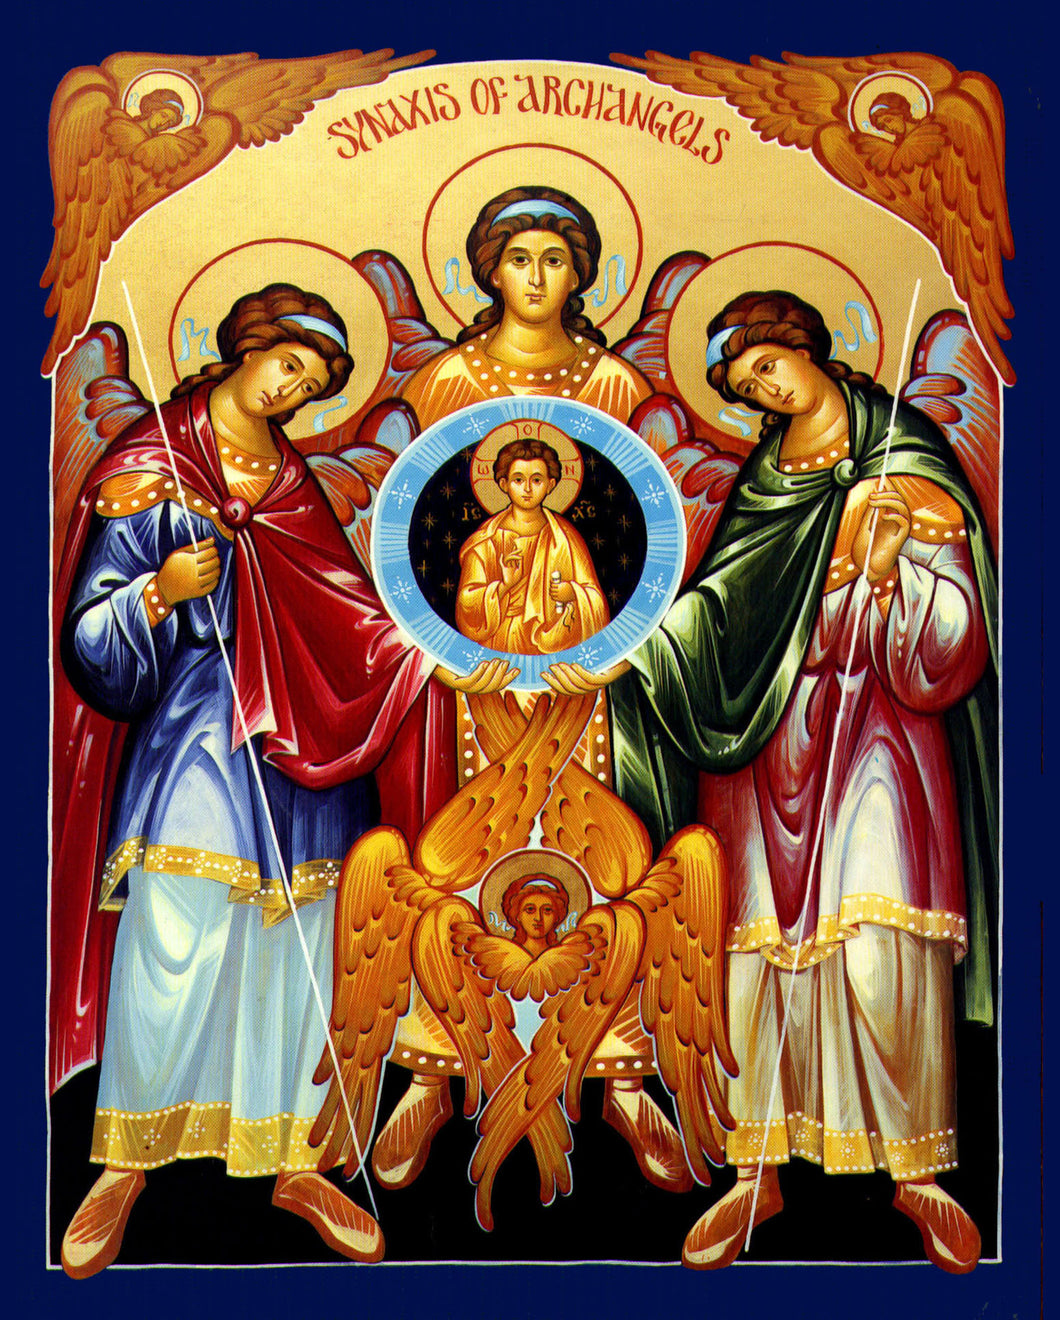 Synaxis of Archangels Icon #2